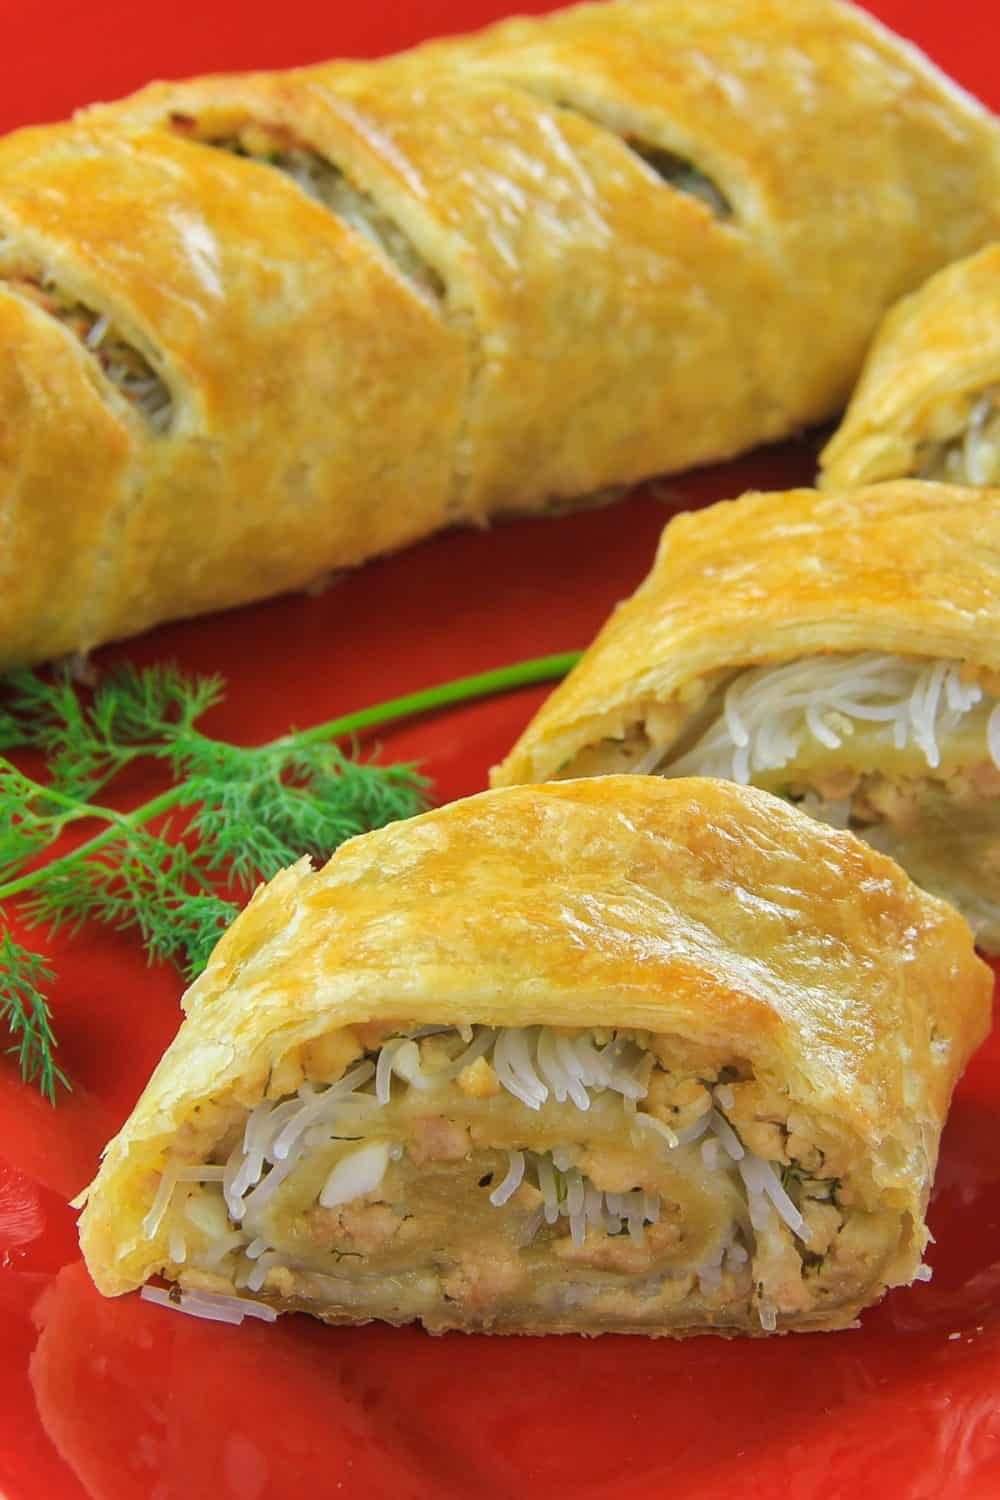 Prepared chicken puff pastry stuffed with rice noodles, eggs, dill, and ground chicken presented on a red plate with fresh dill as a garnish